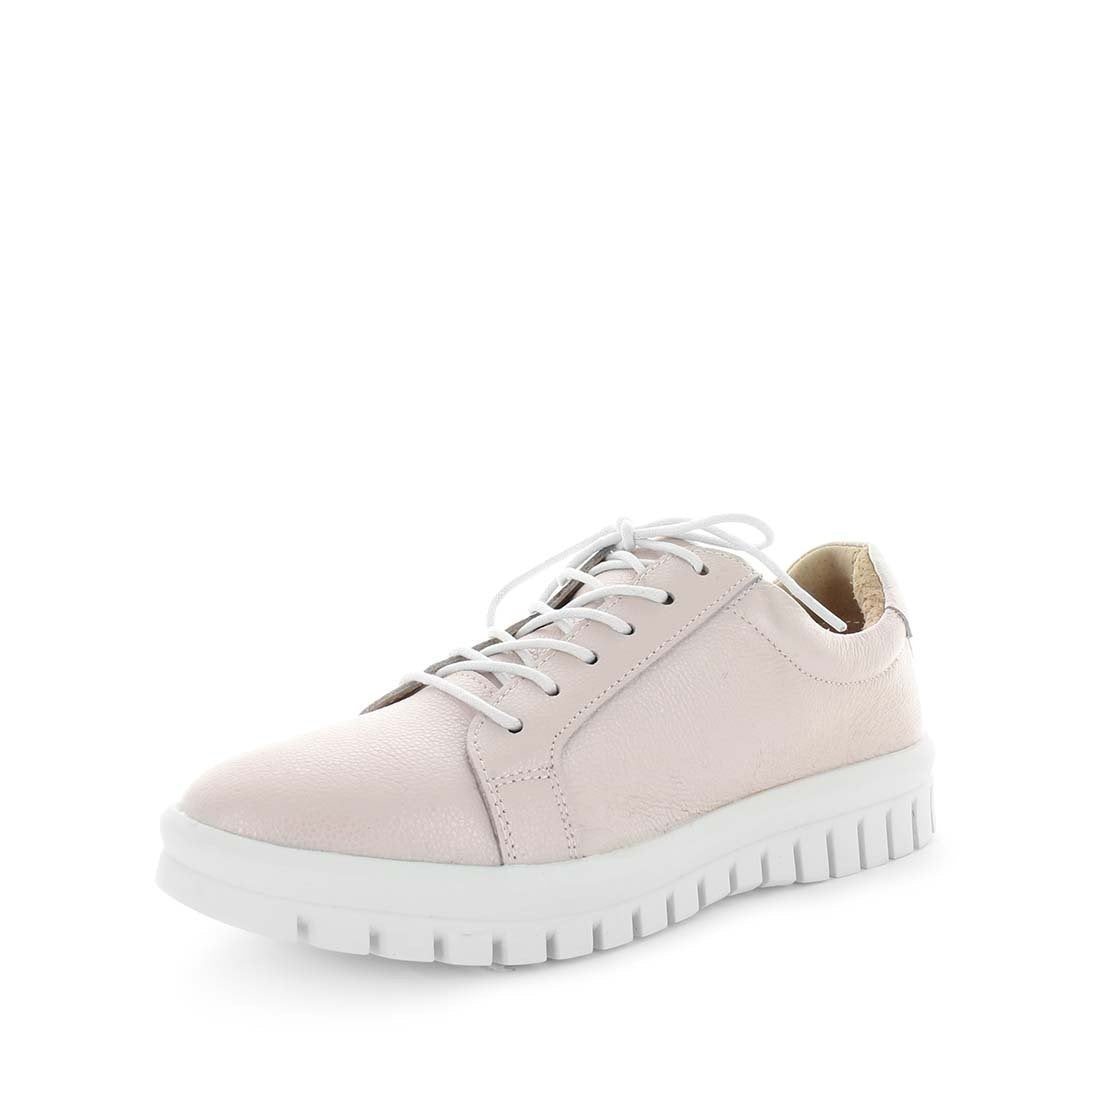 womens comfort shoes, womens just bee shoes, womens sneakers